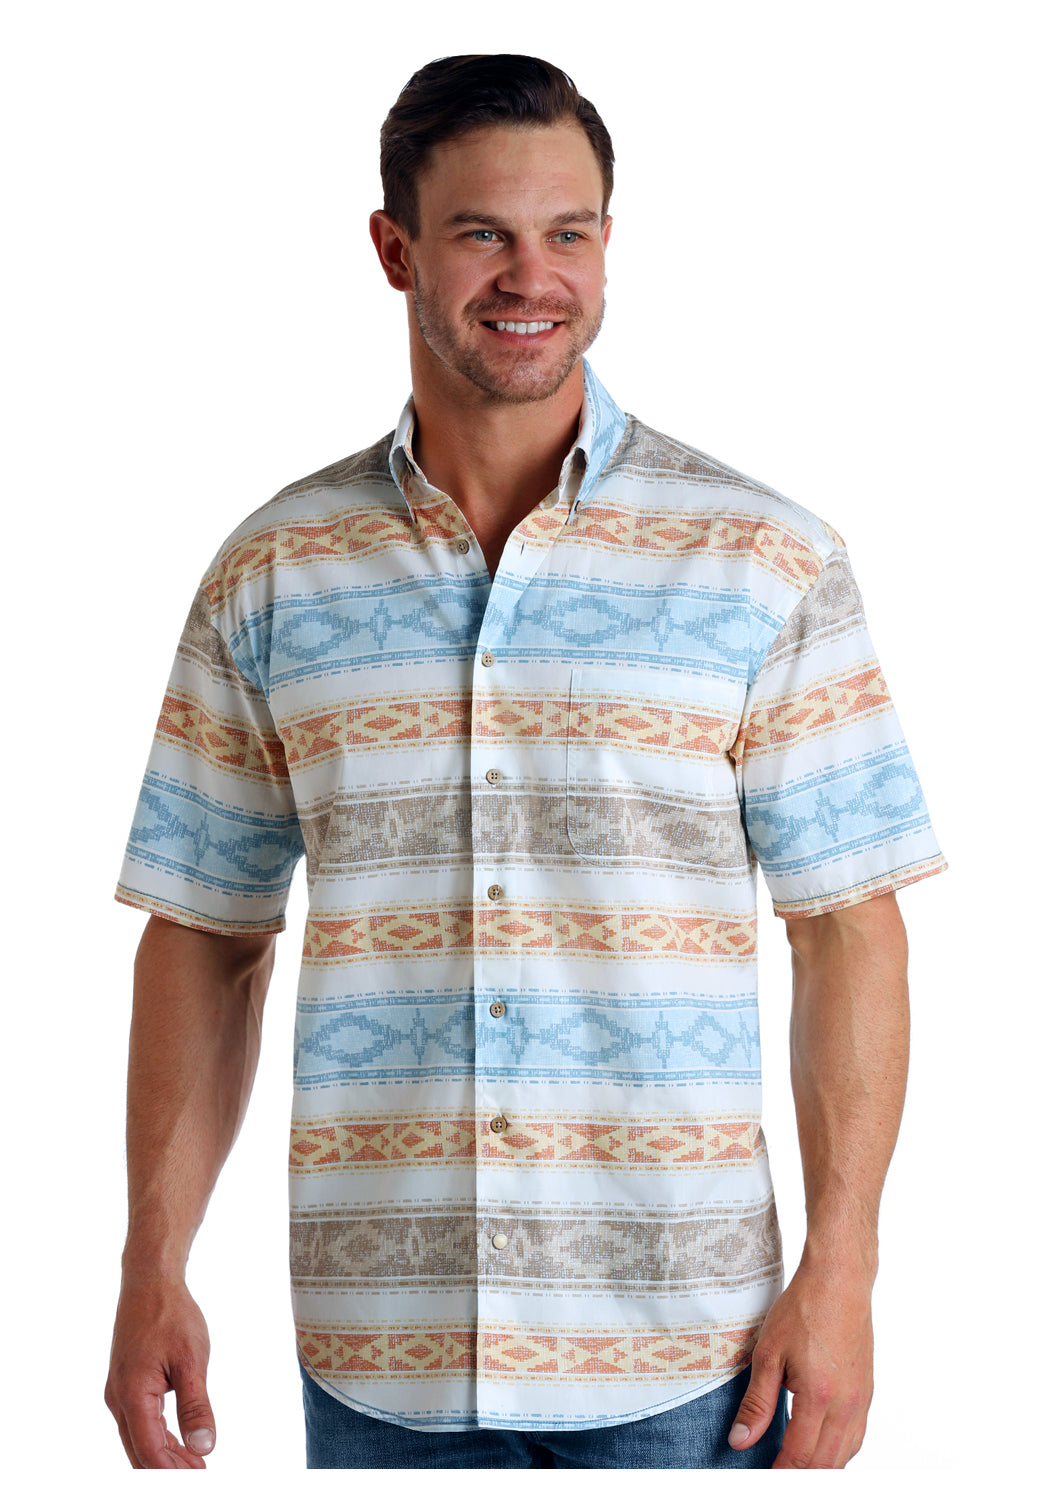 Panhandle Rough Stock Stretch Men's Shirt